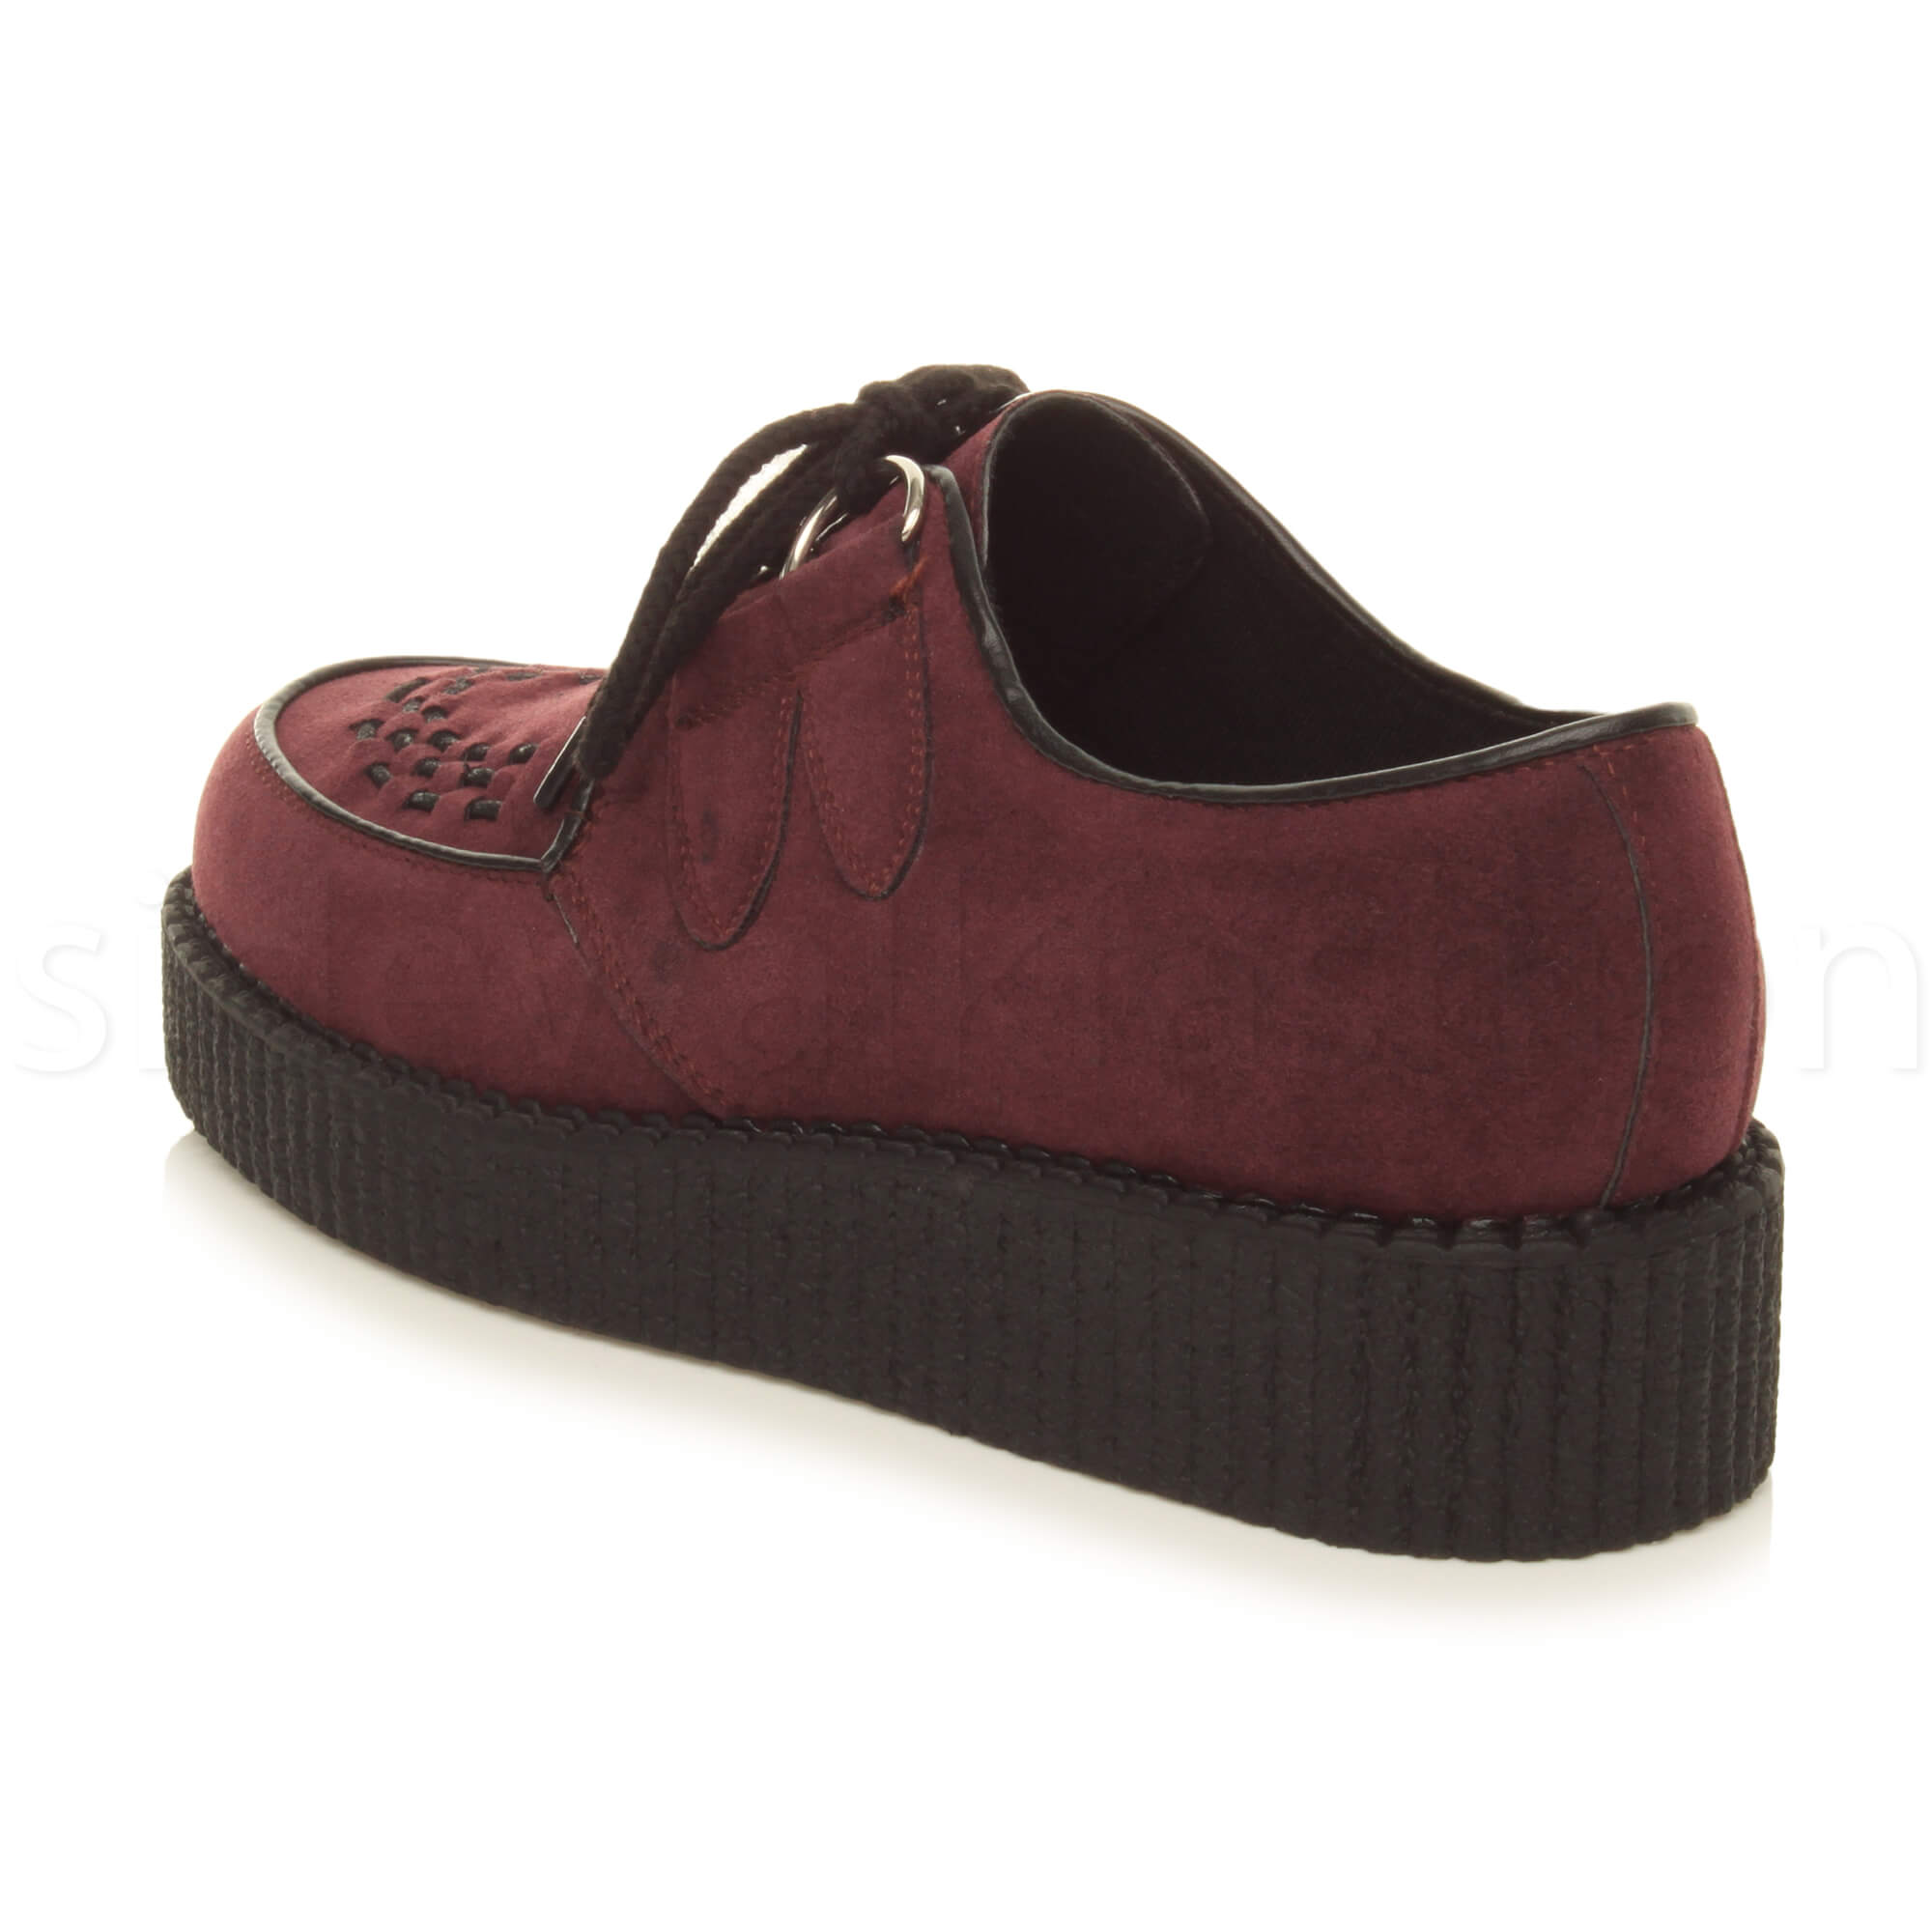 Womens-ladies-flat-platform-wedge-lace-up-goth-punk-creepers-shoes-boots-size miniatura 36